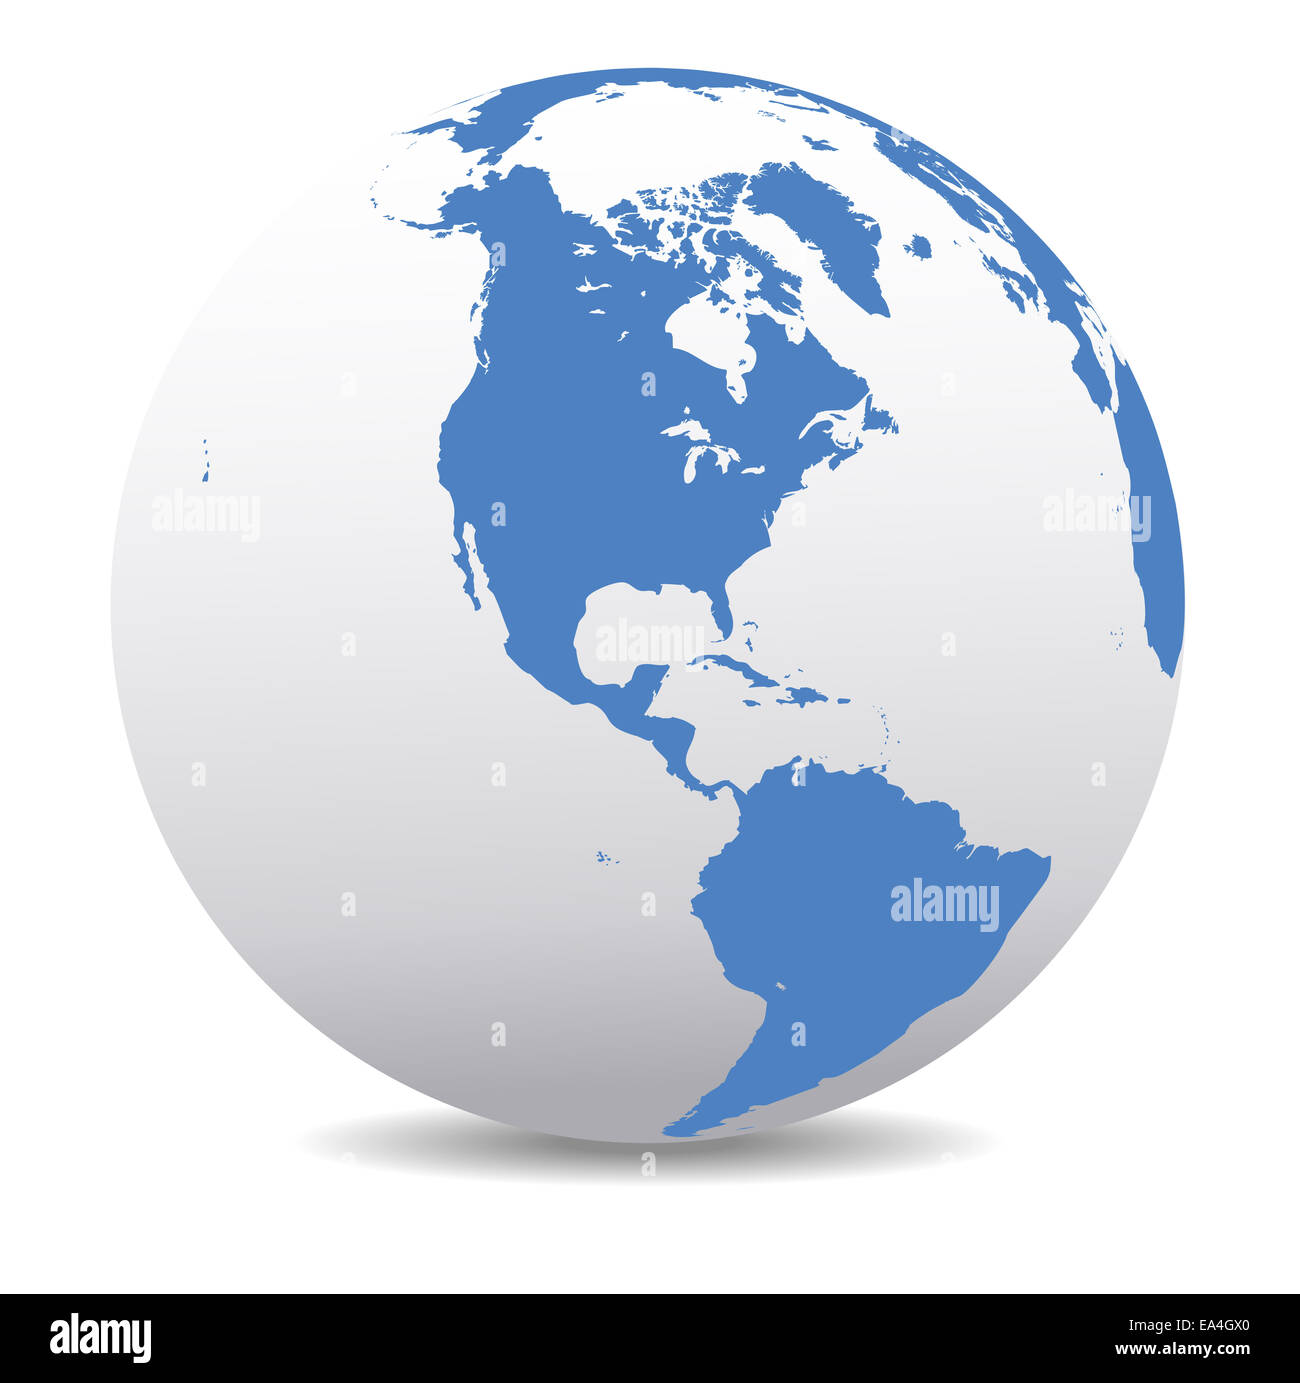 Canada On Map Of The World.America Canada World Earth Icon Globe Map Stock Photo 75089112 Alamy